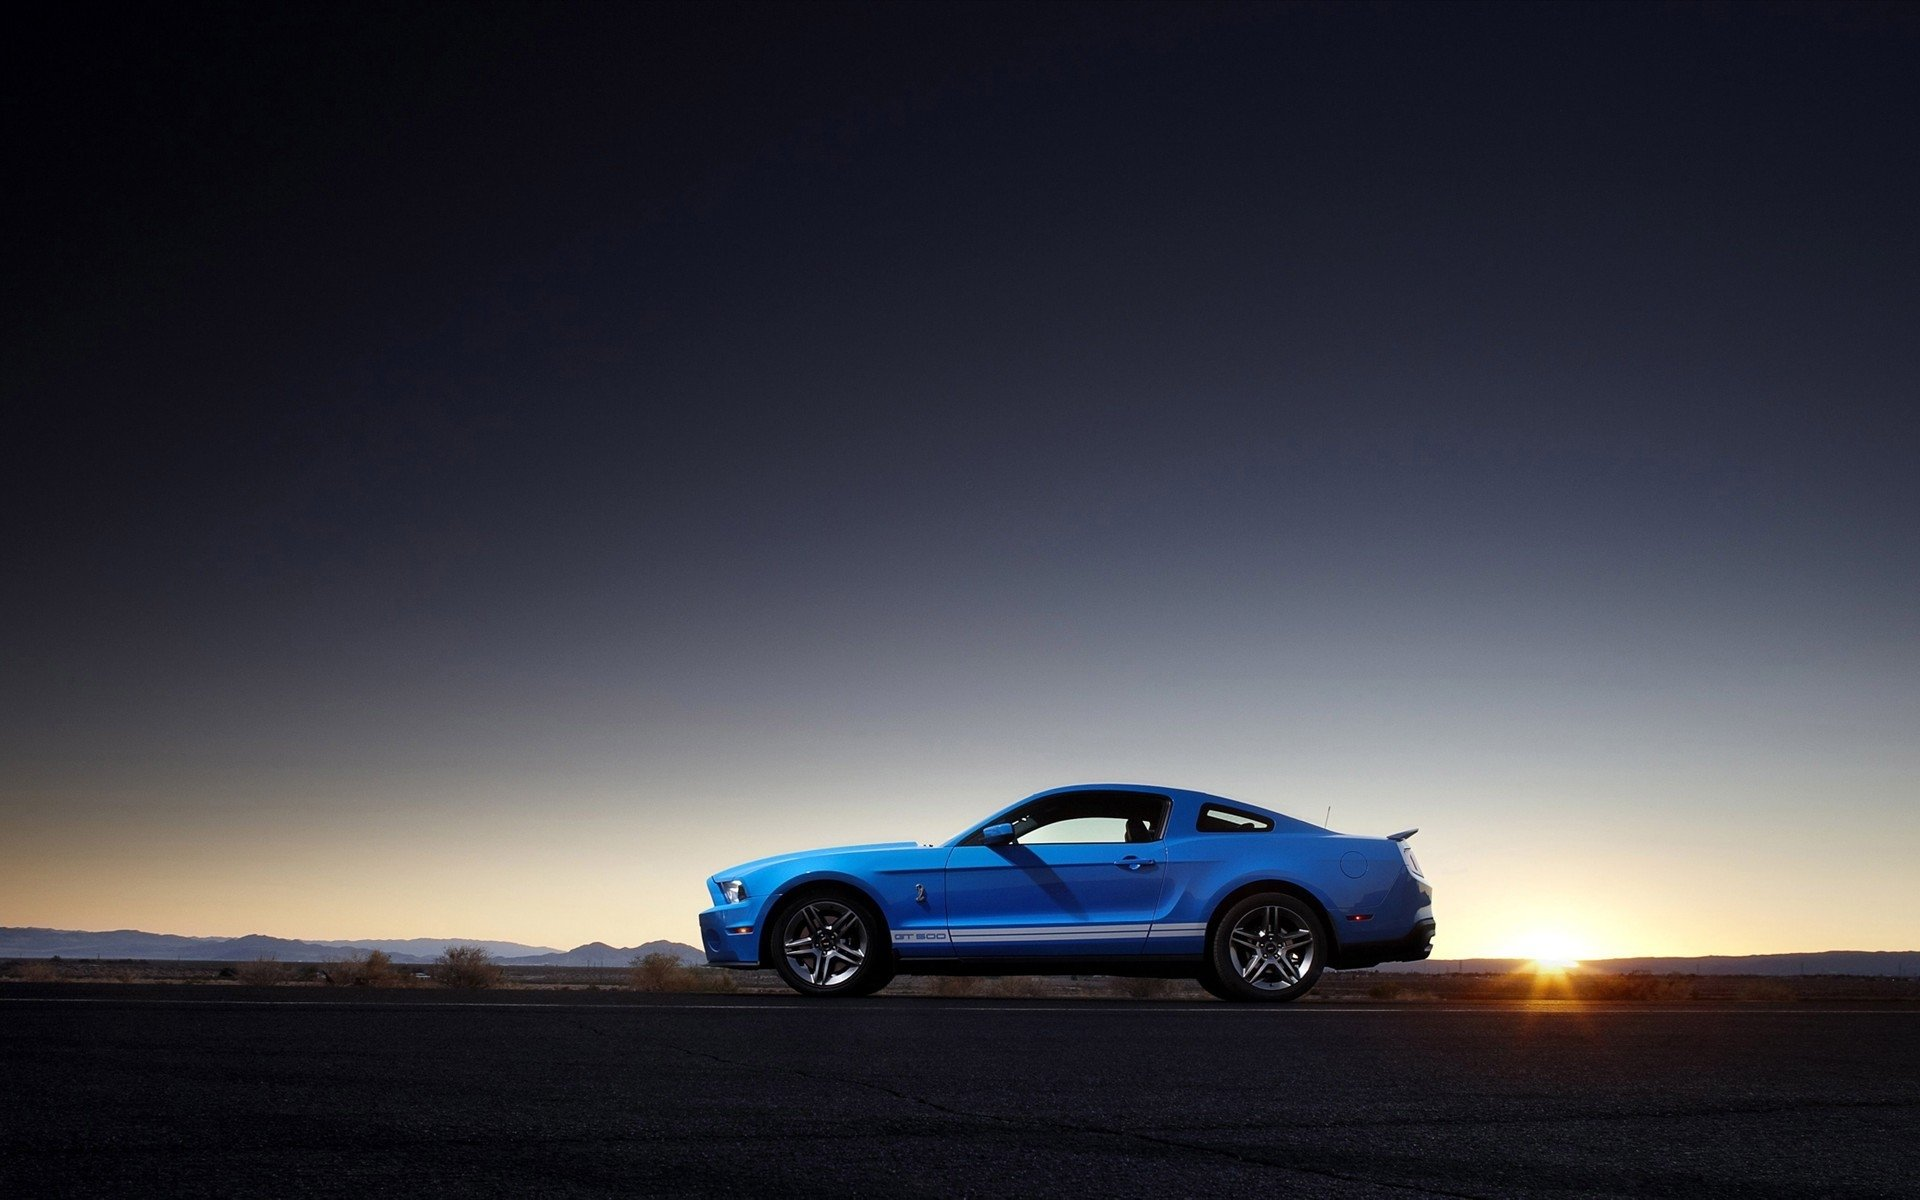 11 Ford Mustang Shelby Cobra Gt 500 Hd Wallpapers